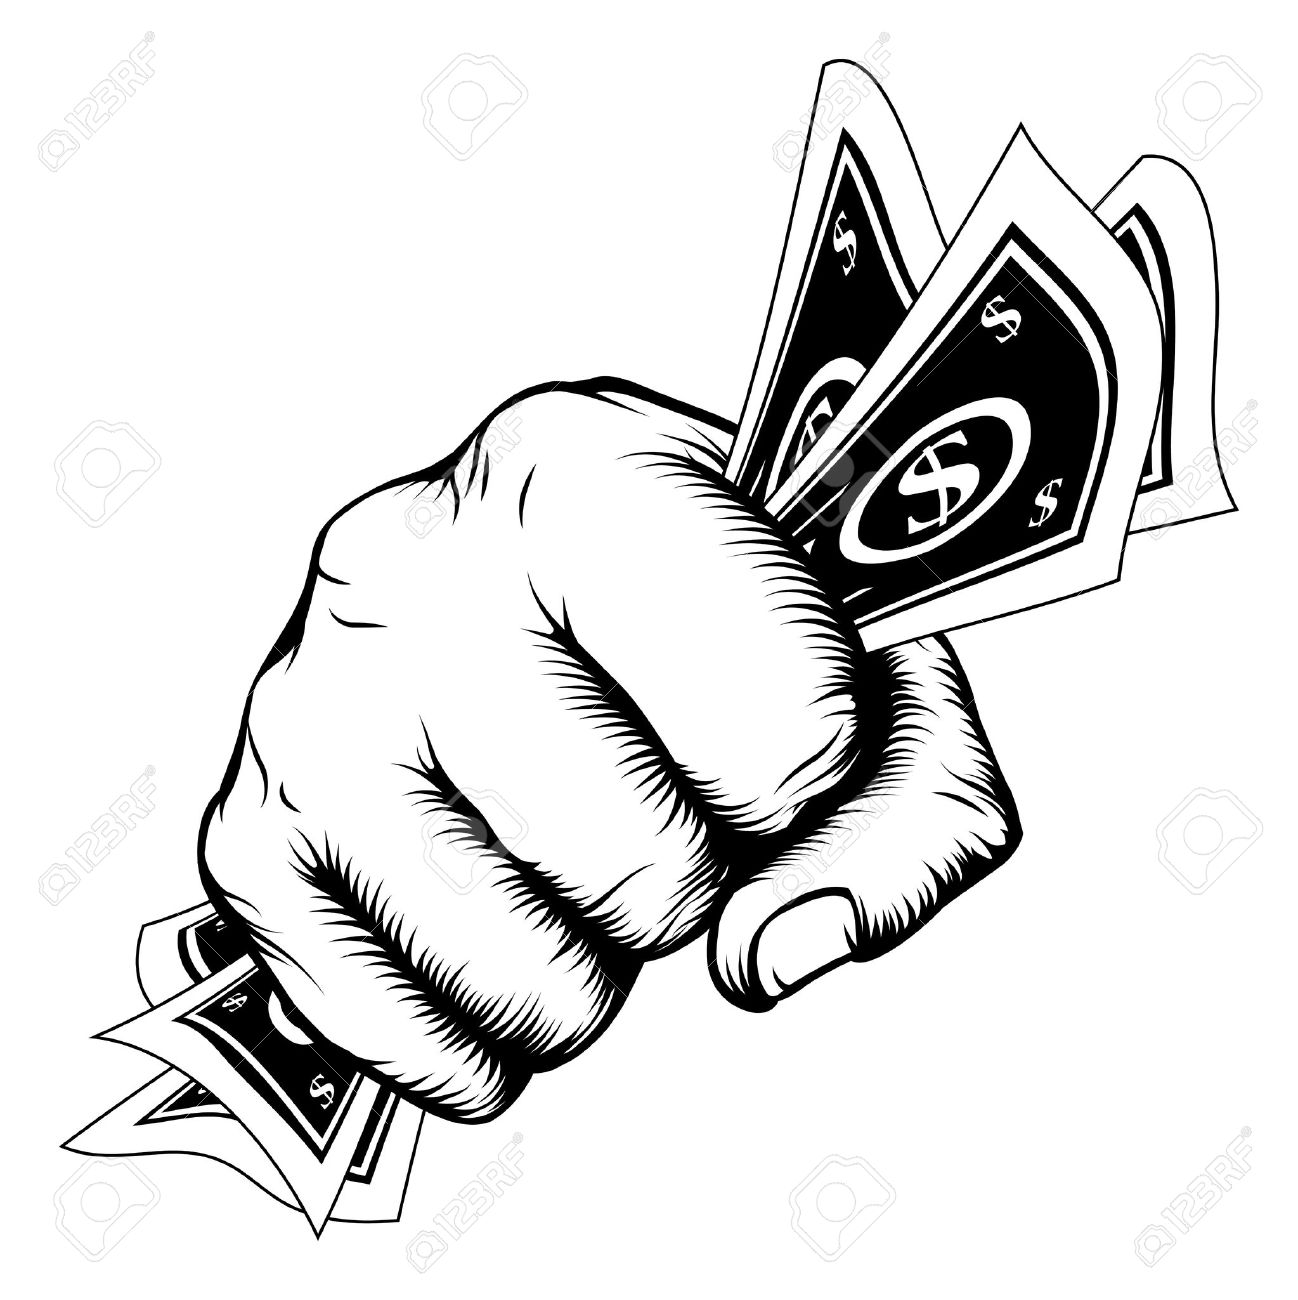 1298x1300 Hand In A Fist With Cash Dollar Bills Illustration In Woodcut